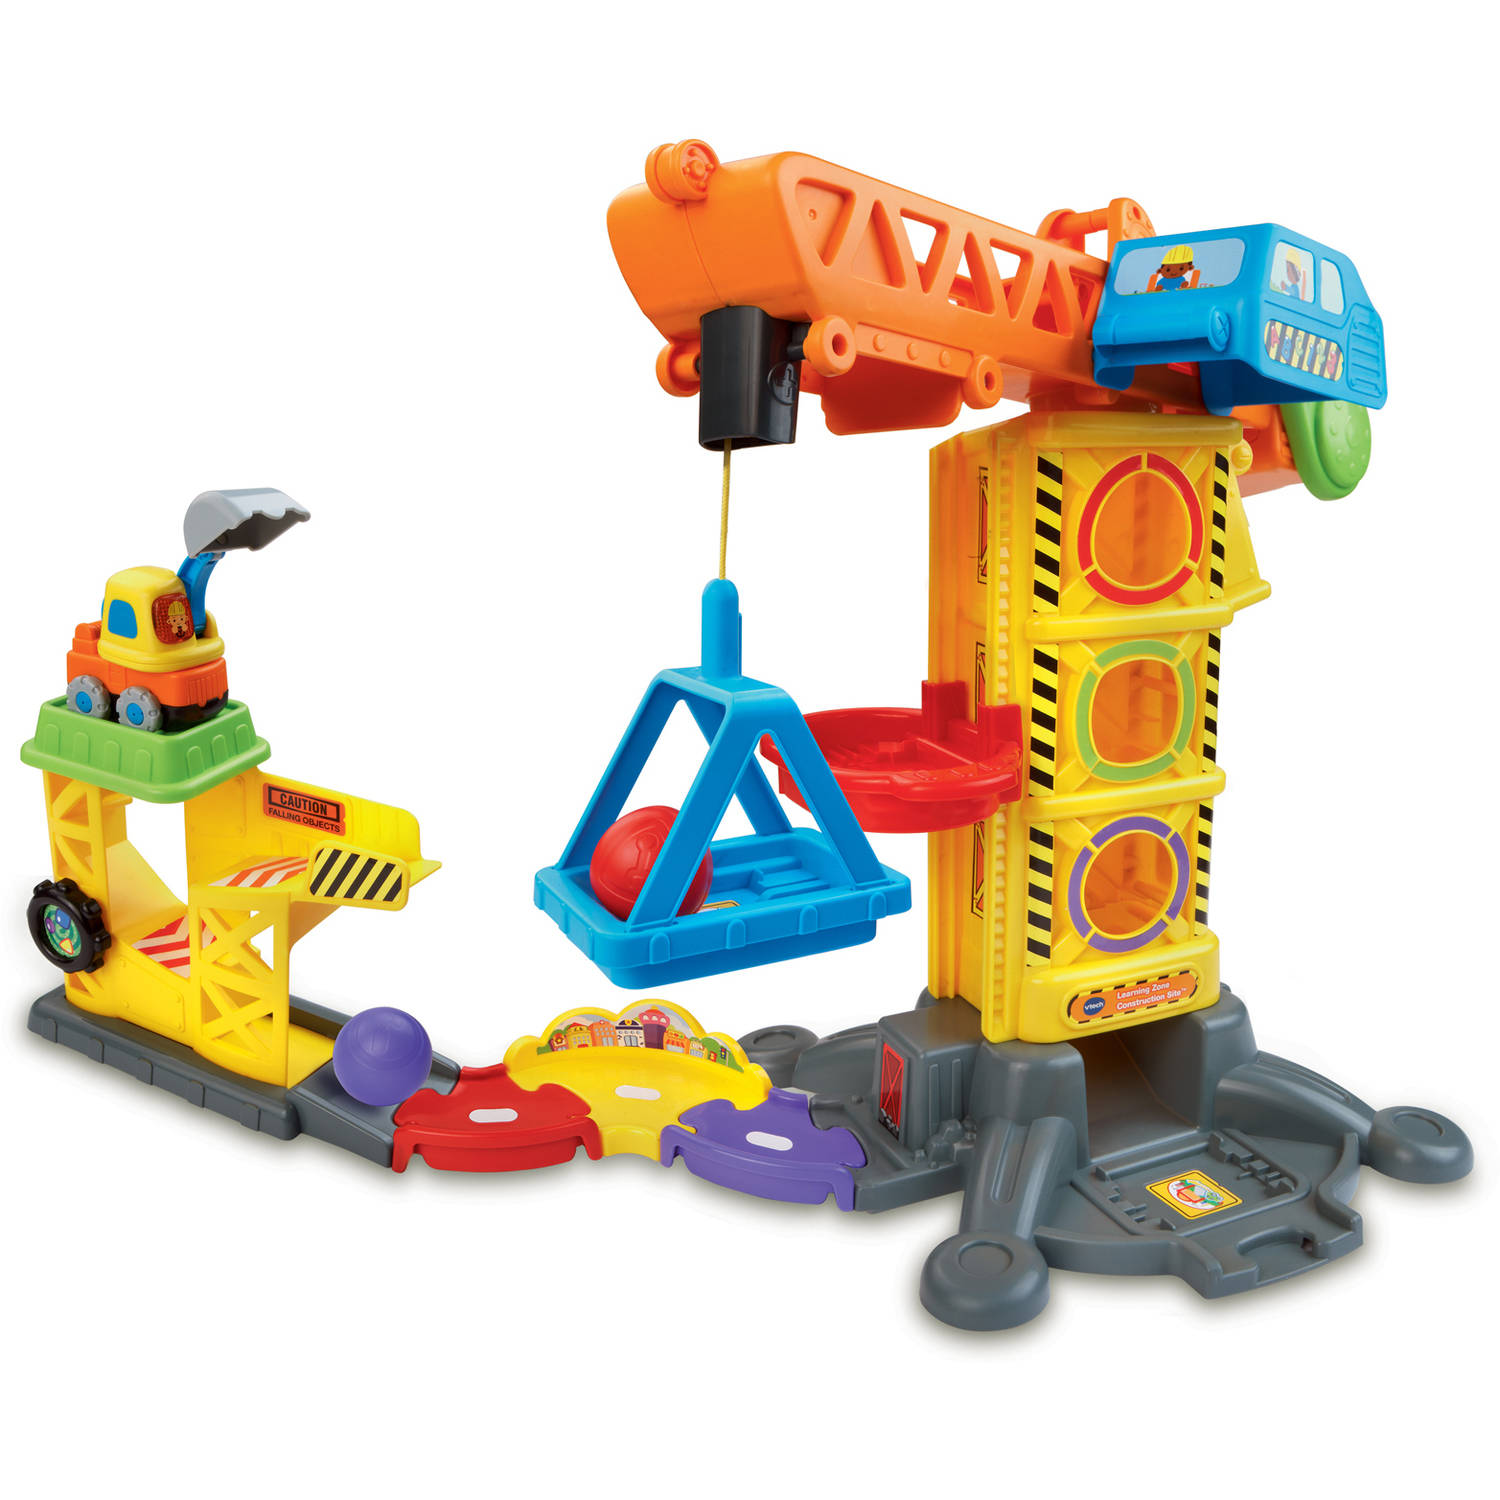 VTech Go! Go! Smart Wheels Learning Zone Construction Site by VTech